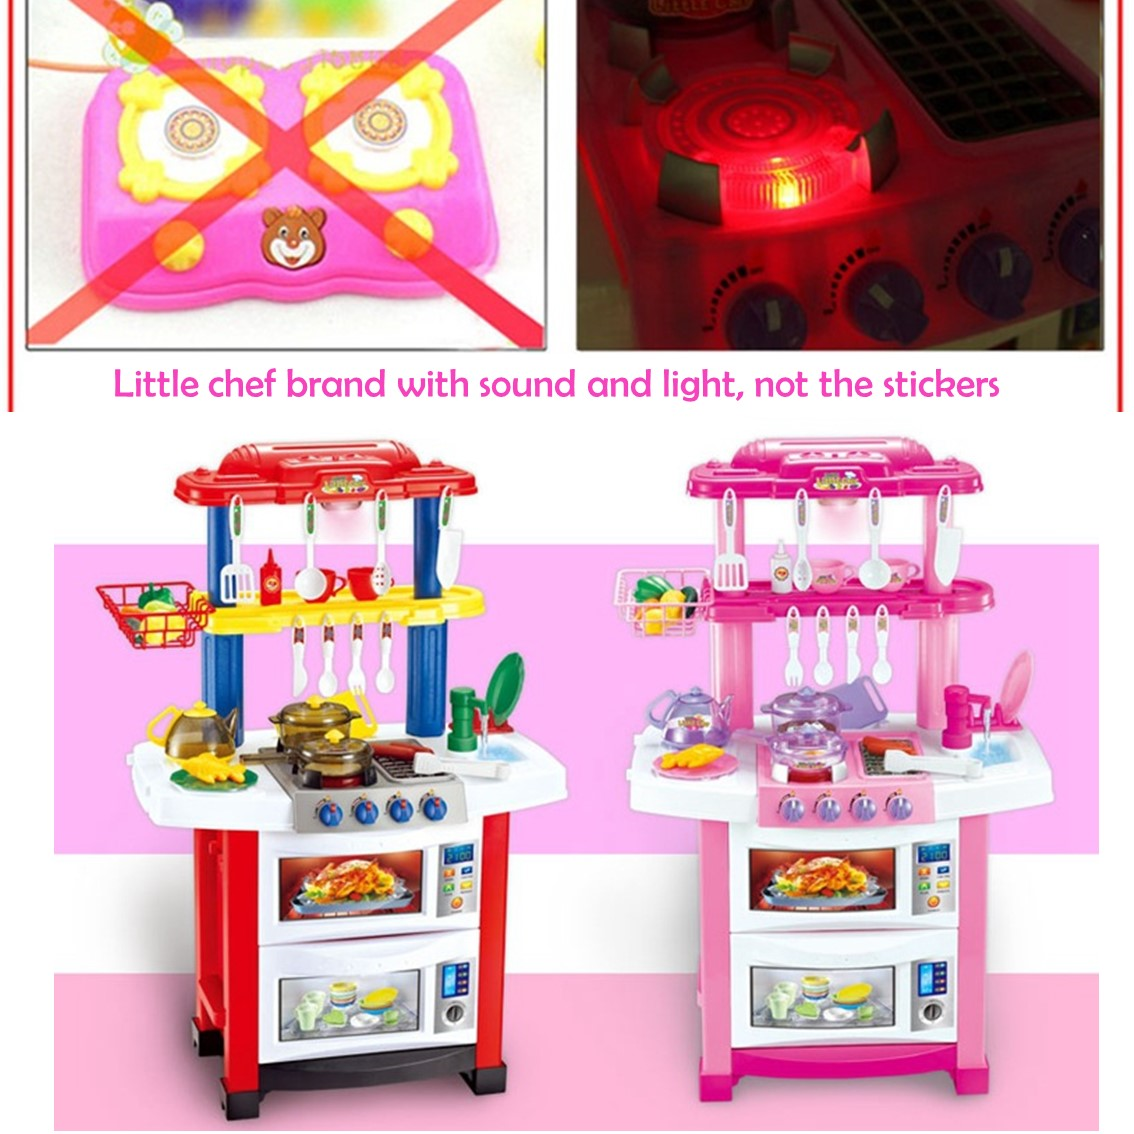 Kitchen Set With Light And Sound: Buy Kids Role Playing Kitchen Set With Sounds And Light